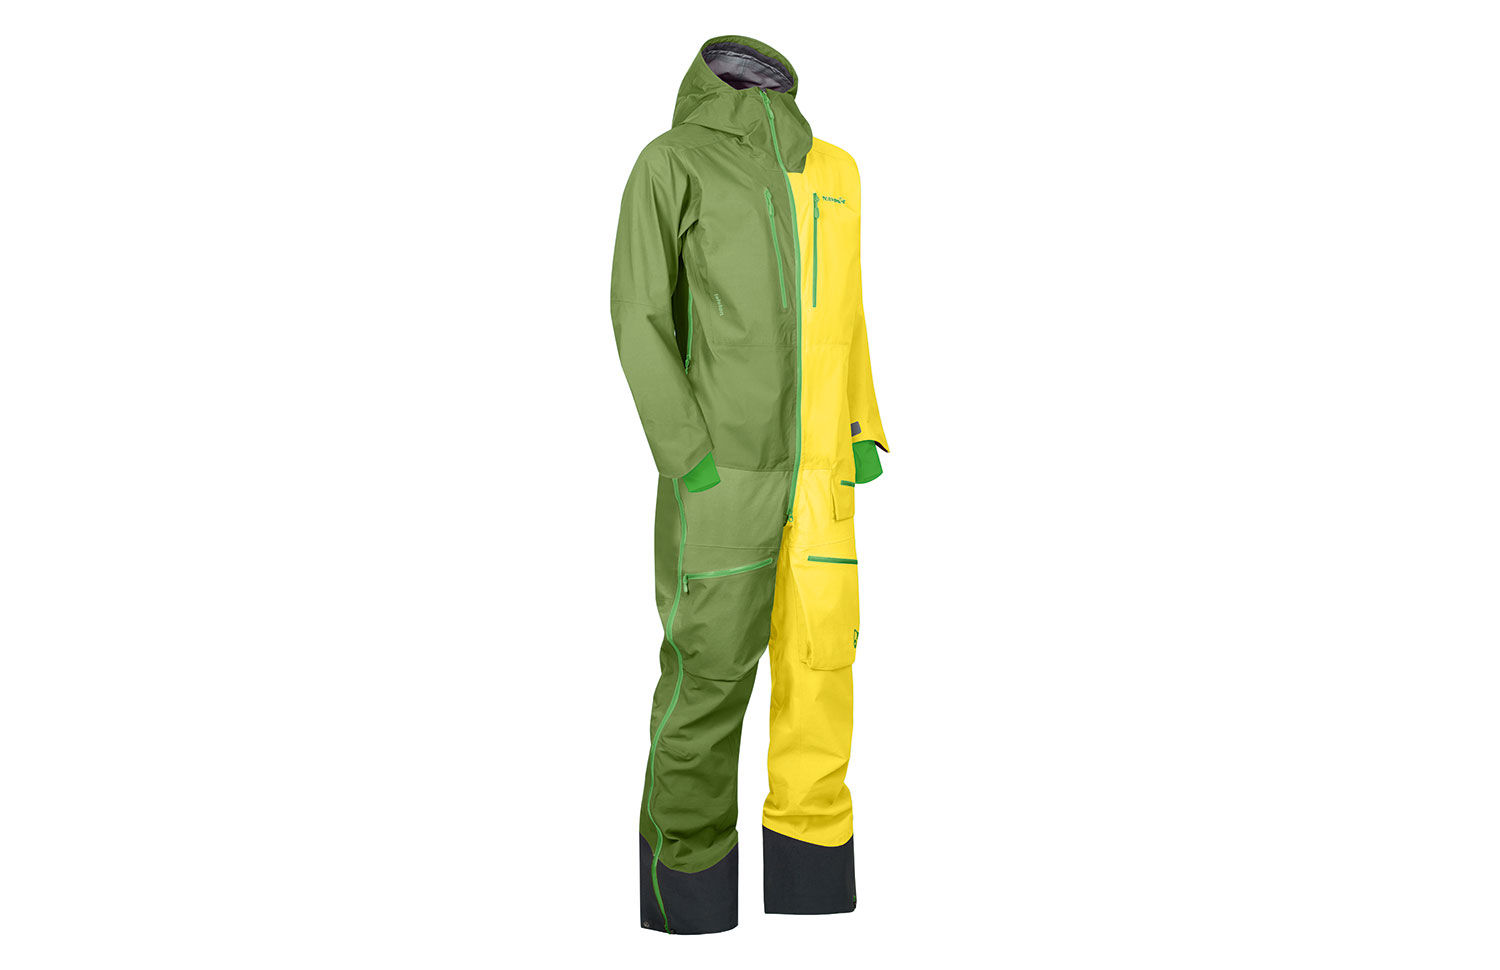 Norrøna onepiece heldress i Gore-Tex Pro materiale